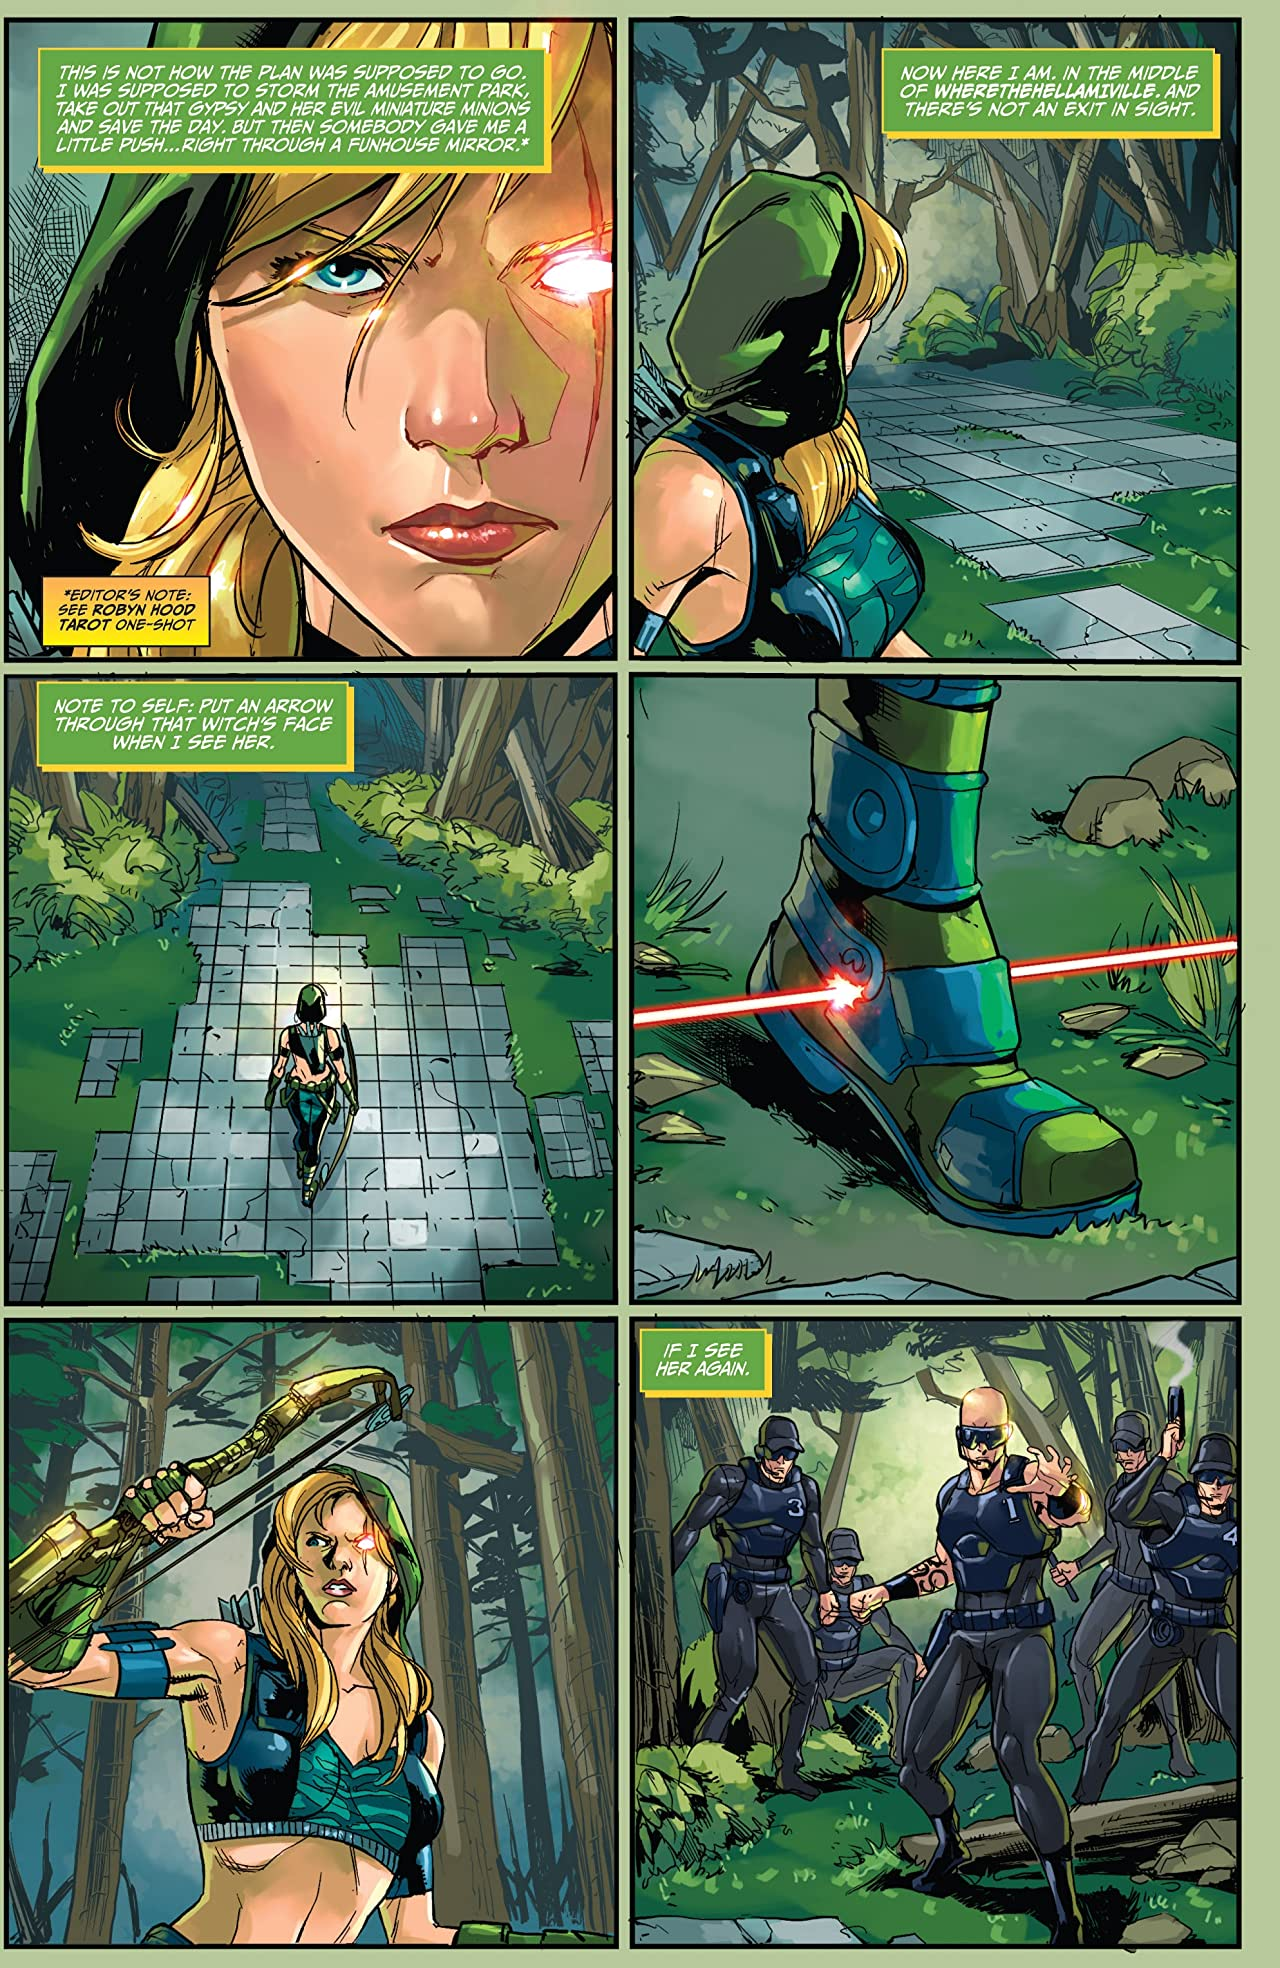 Robyn Hood: The Hunt #1